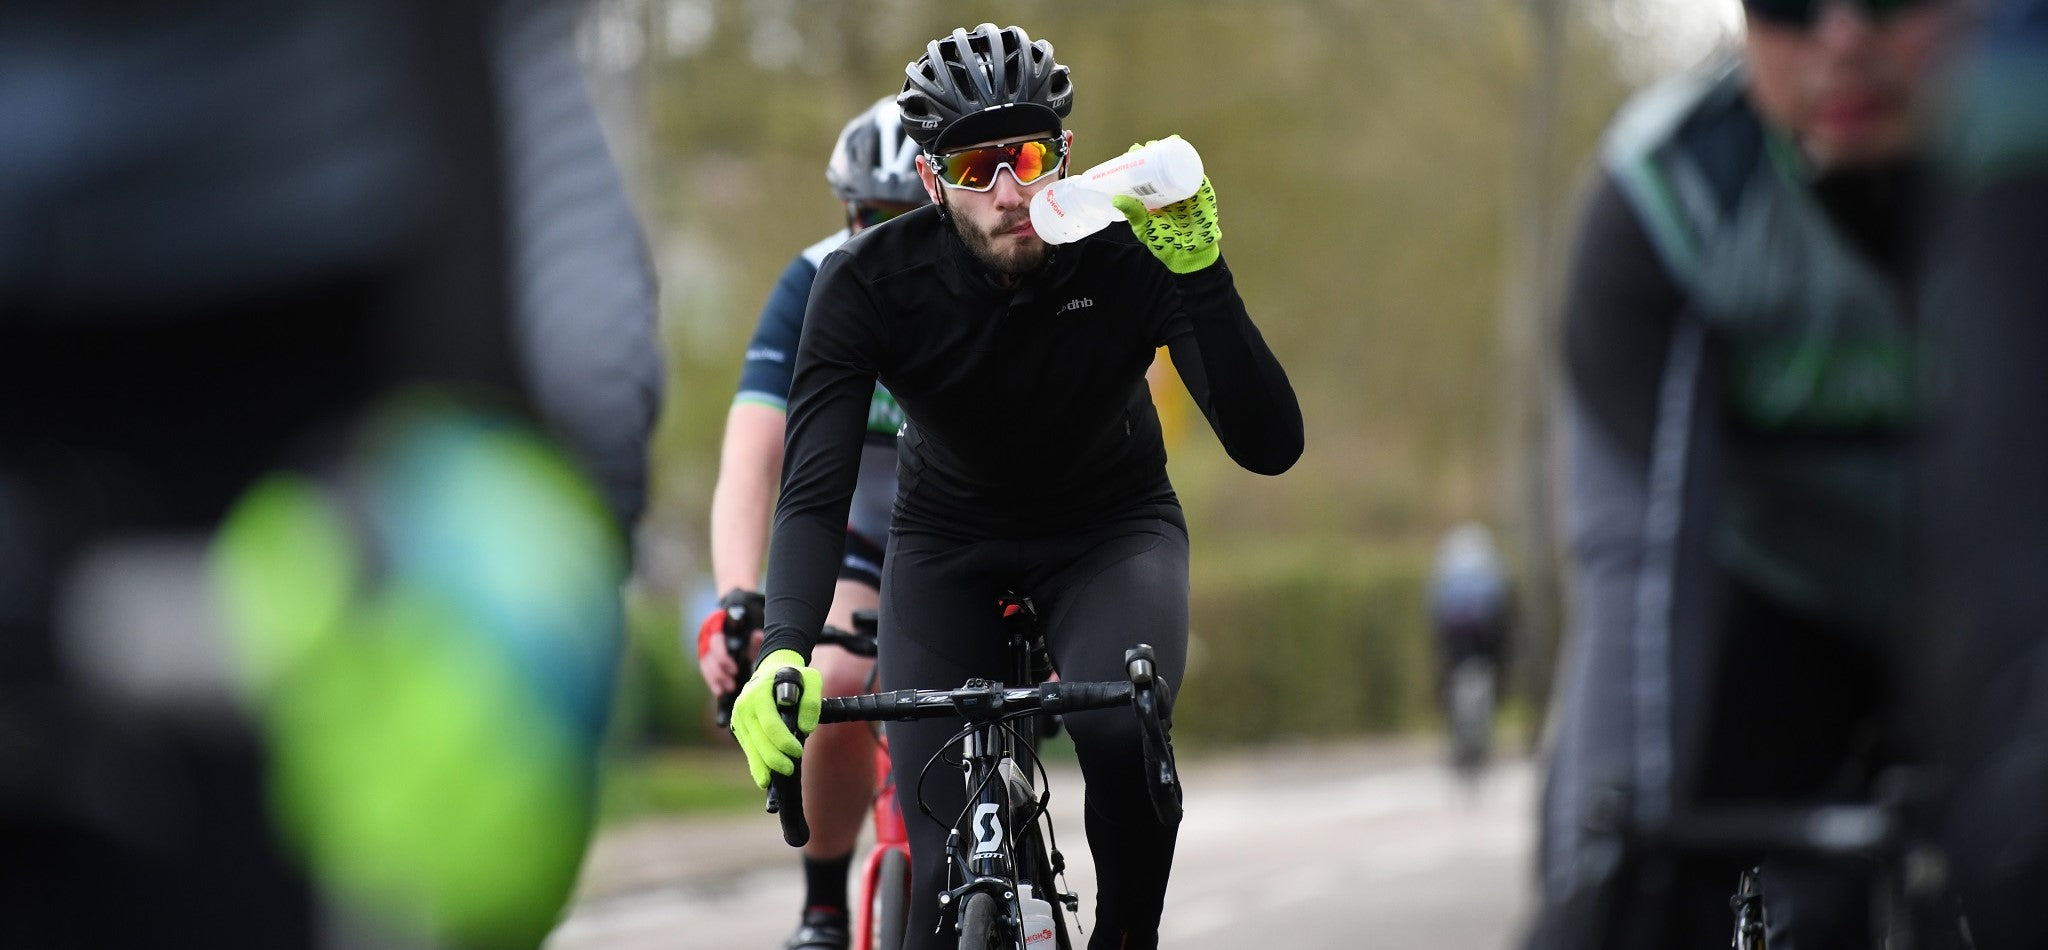 Cyclist takes a drink